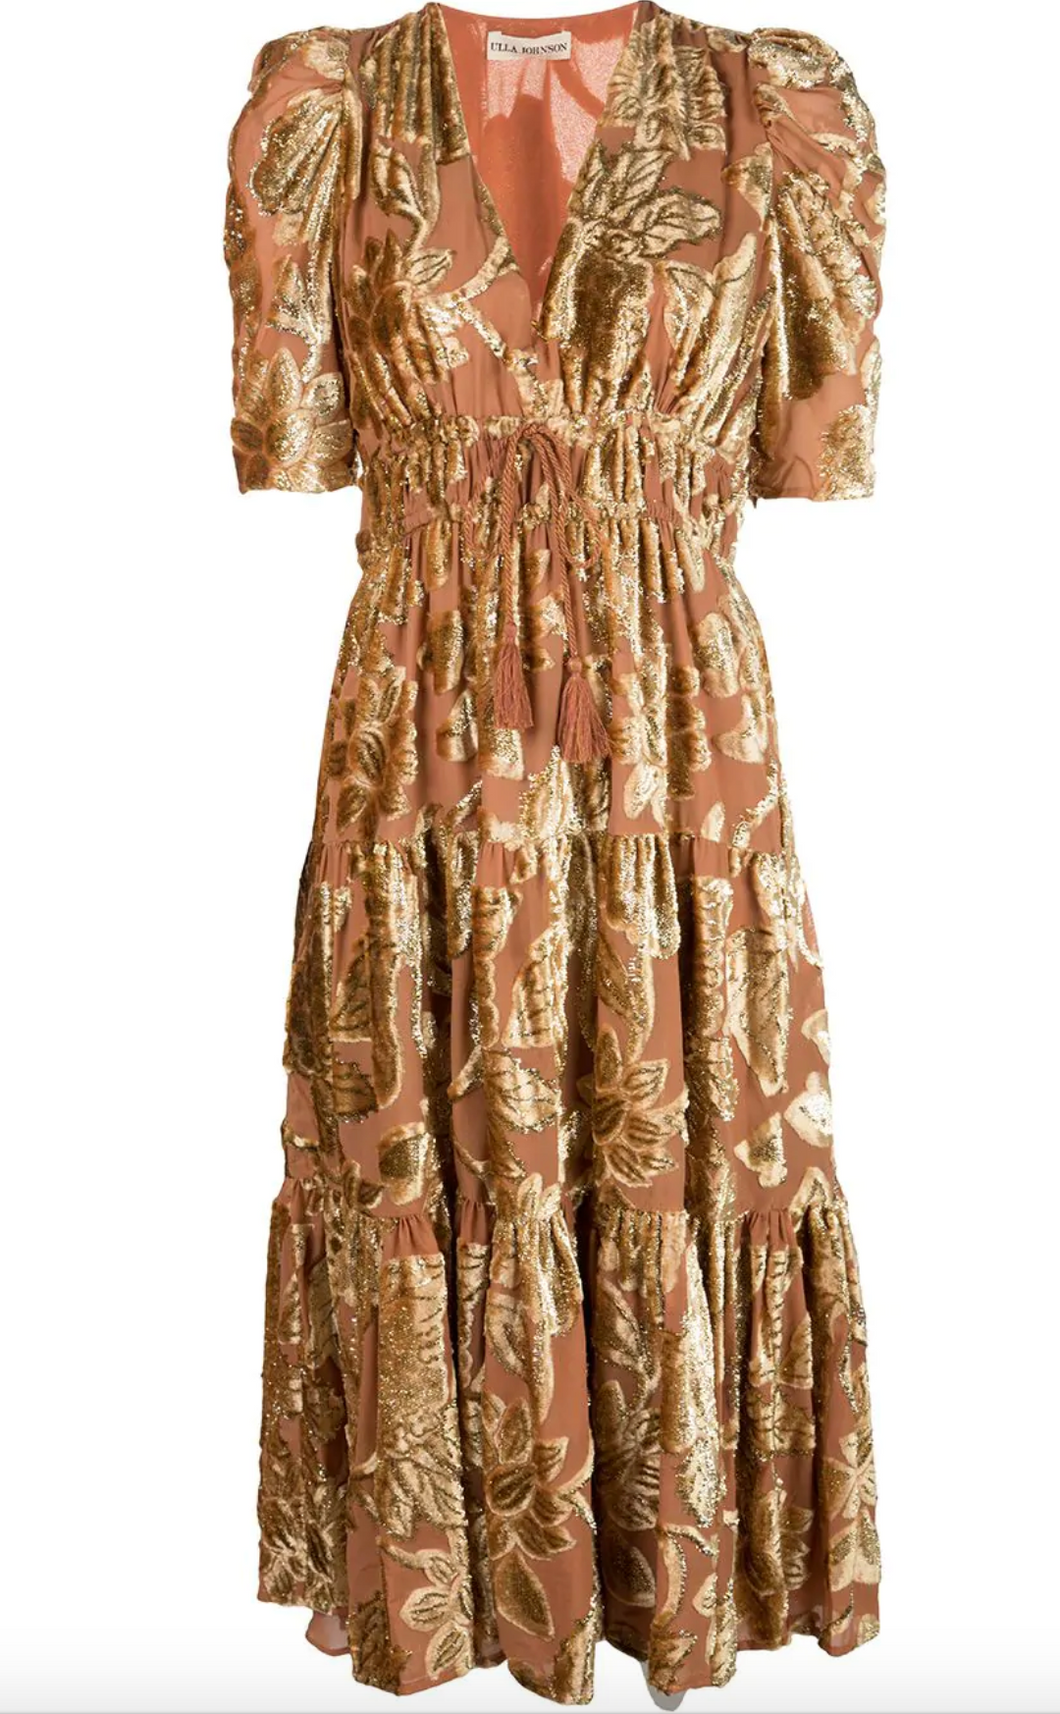 Loretta Dress - Rose Gold